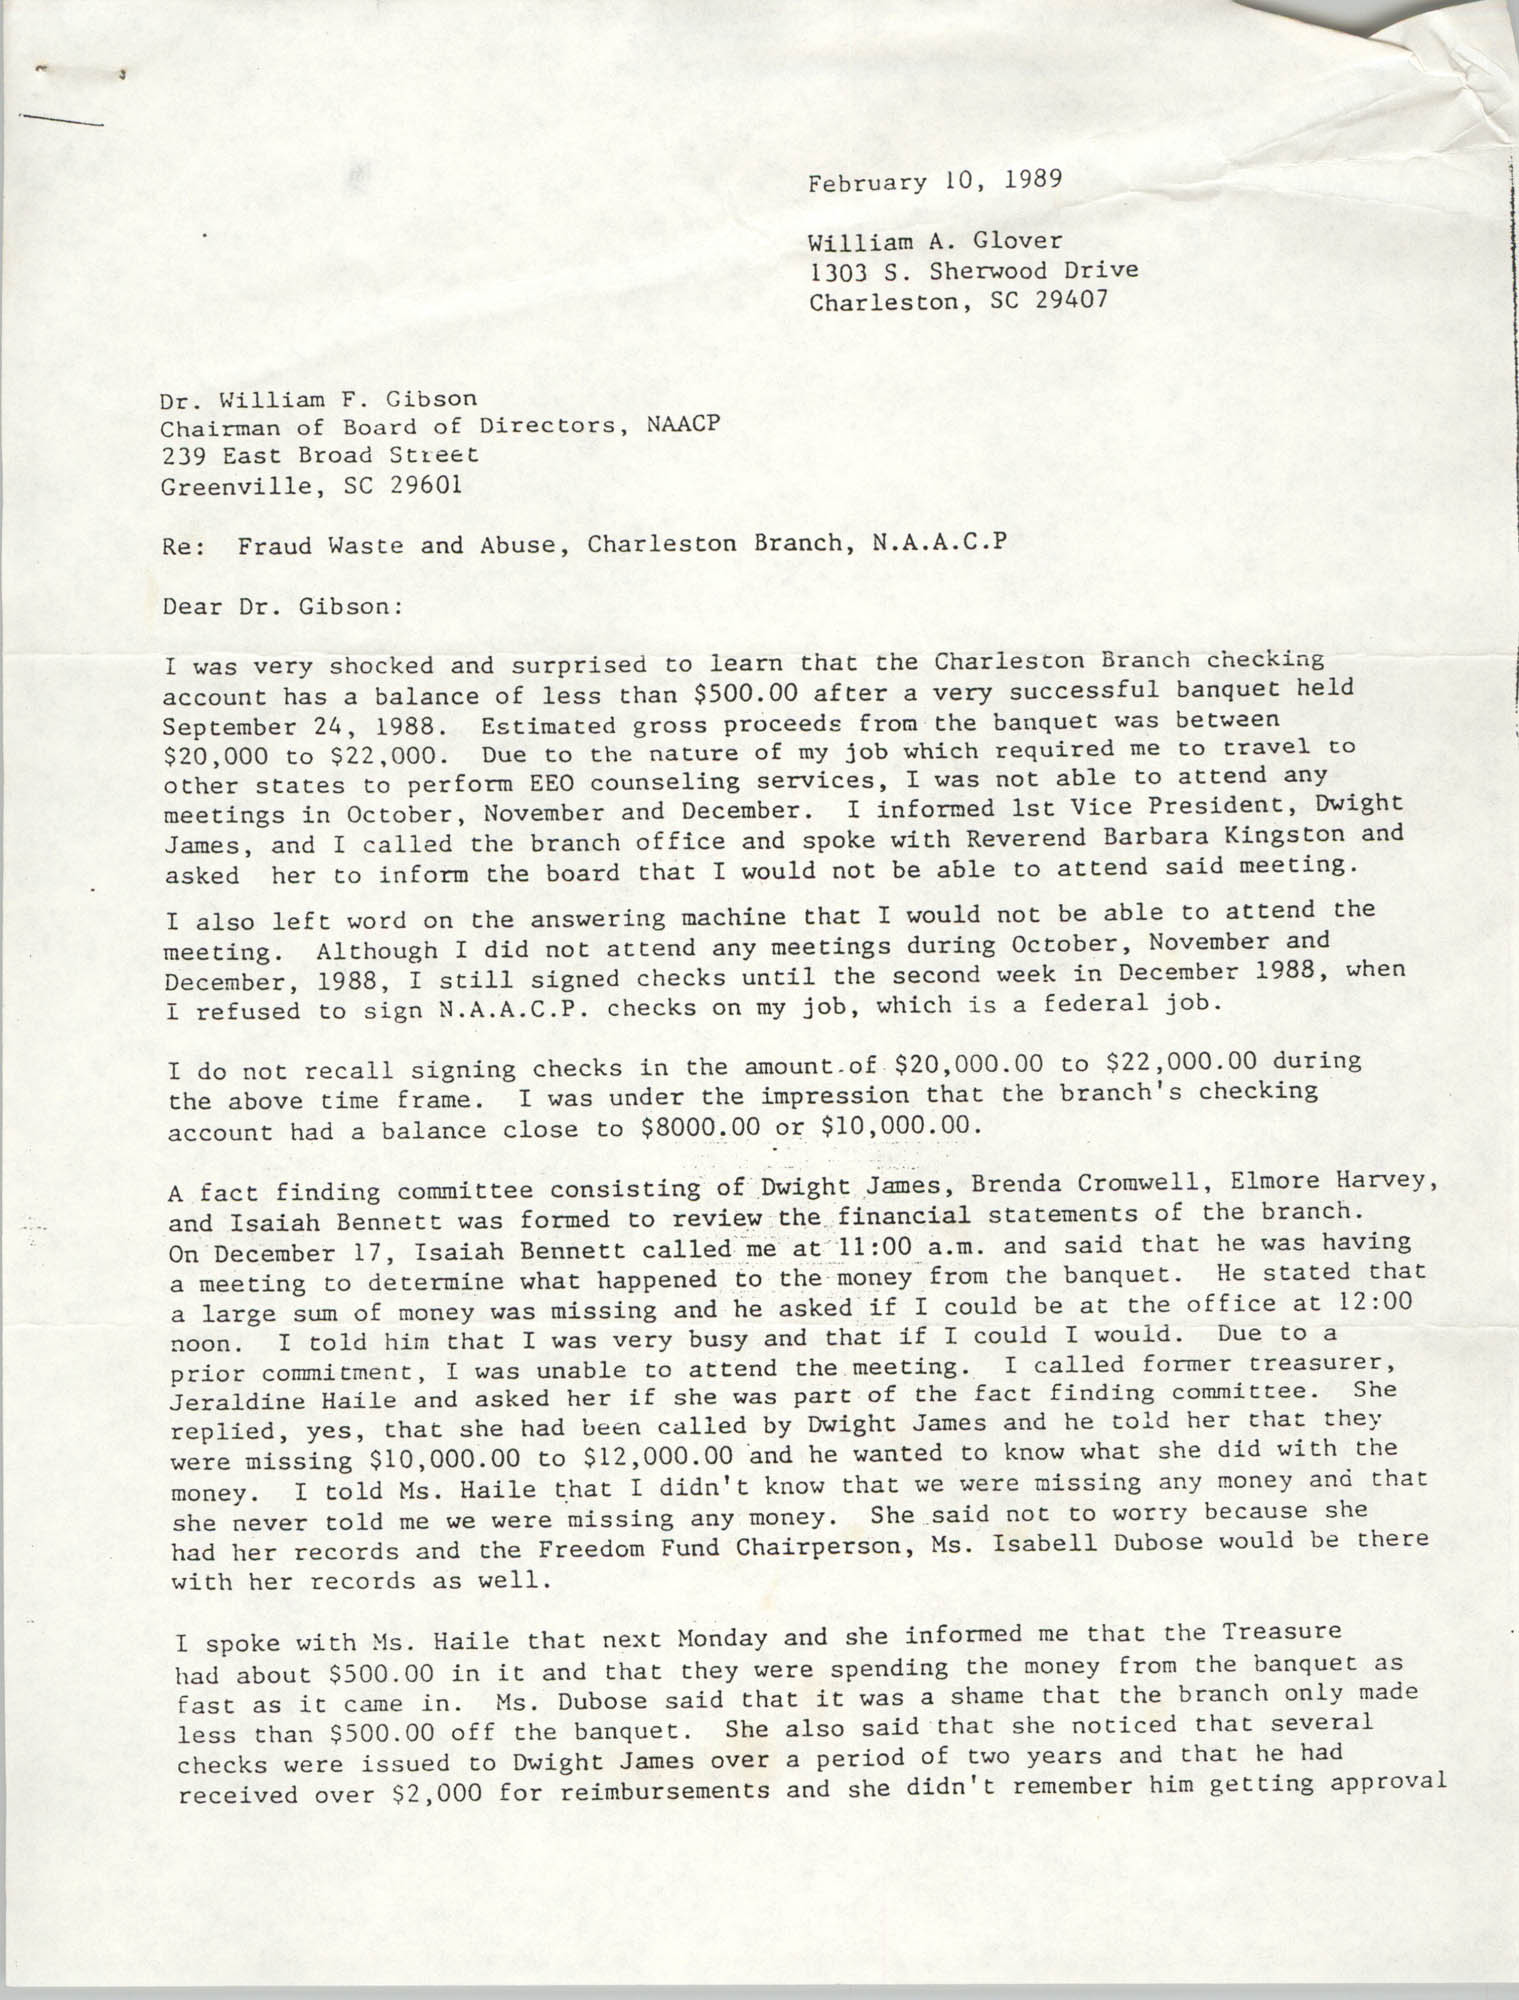 Letter from William A. Glover to William F. Gibson, February 10, 1989